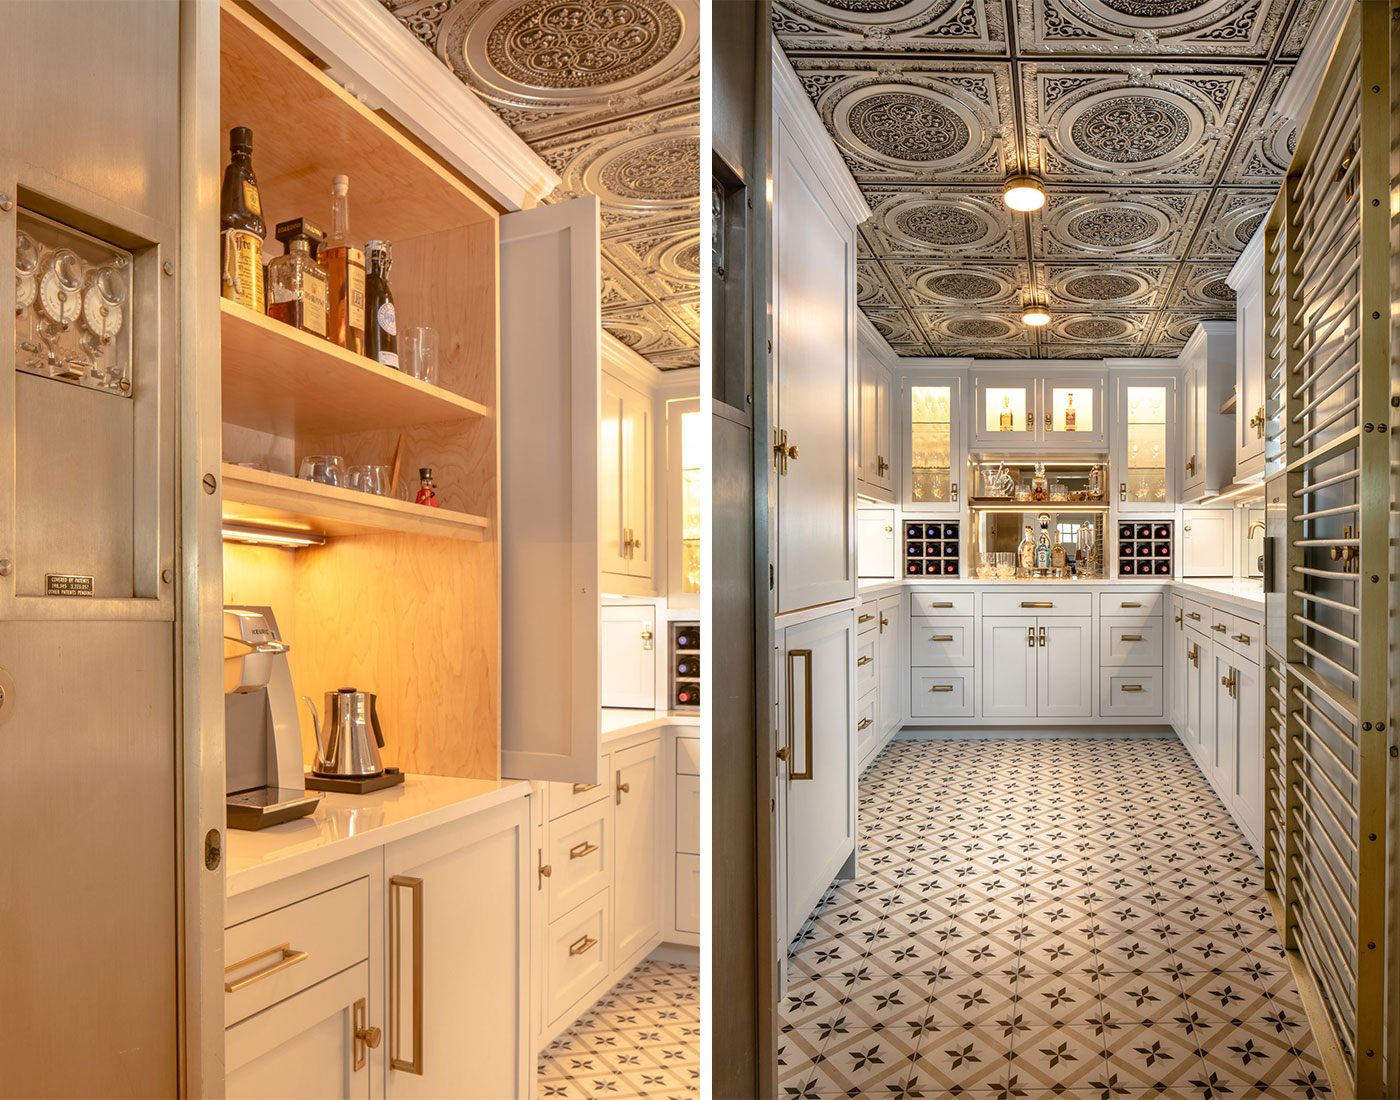 2 images of a converted bank vault turned into a butlers pantry